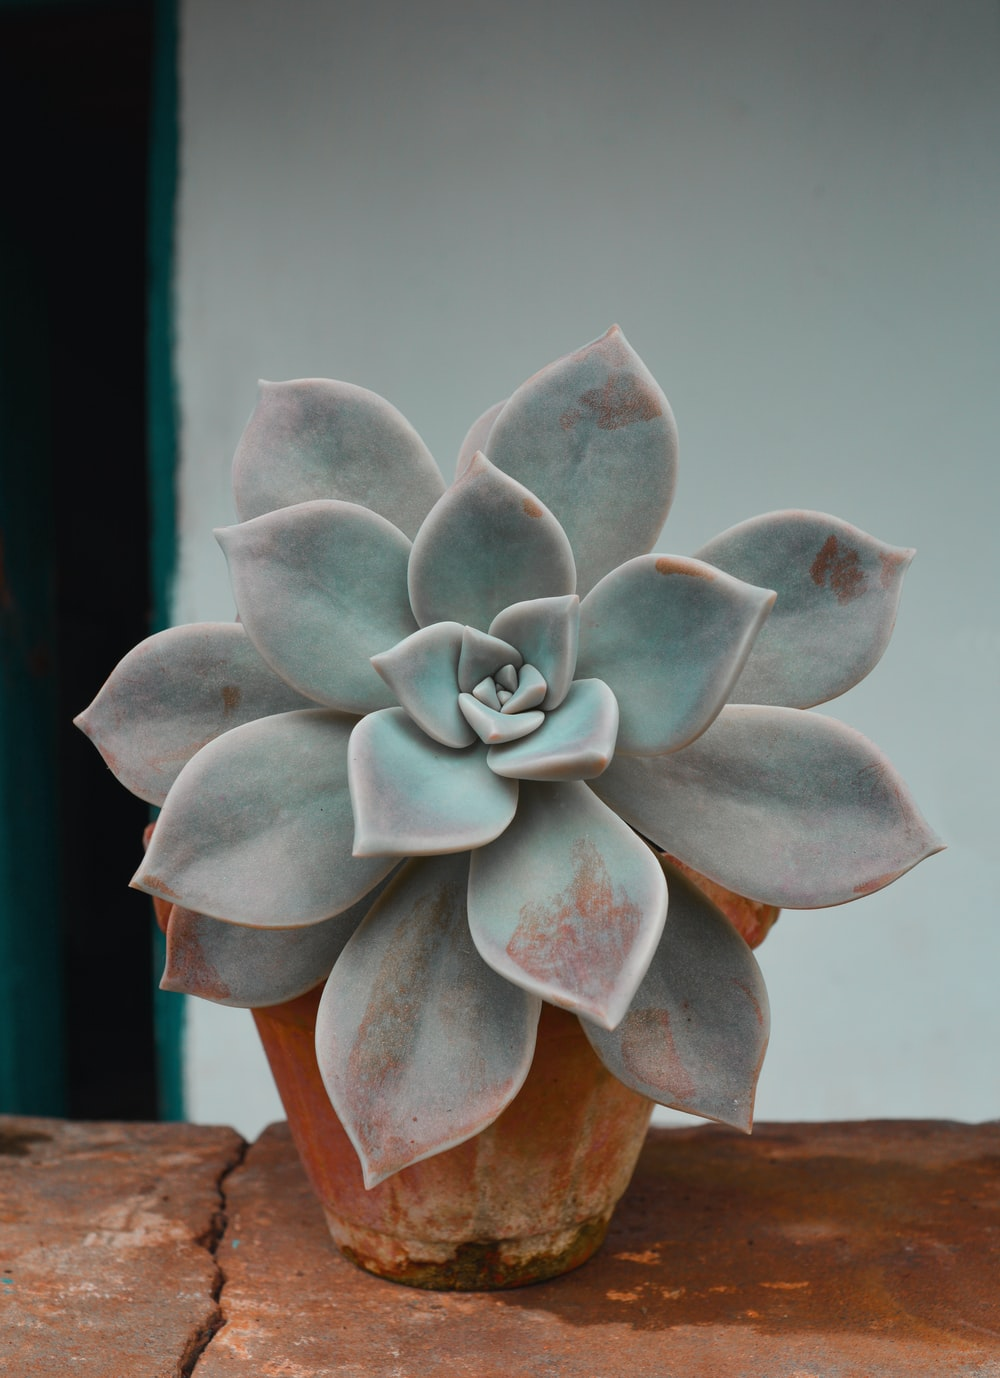 close-up photo of green succulent plant